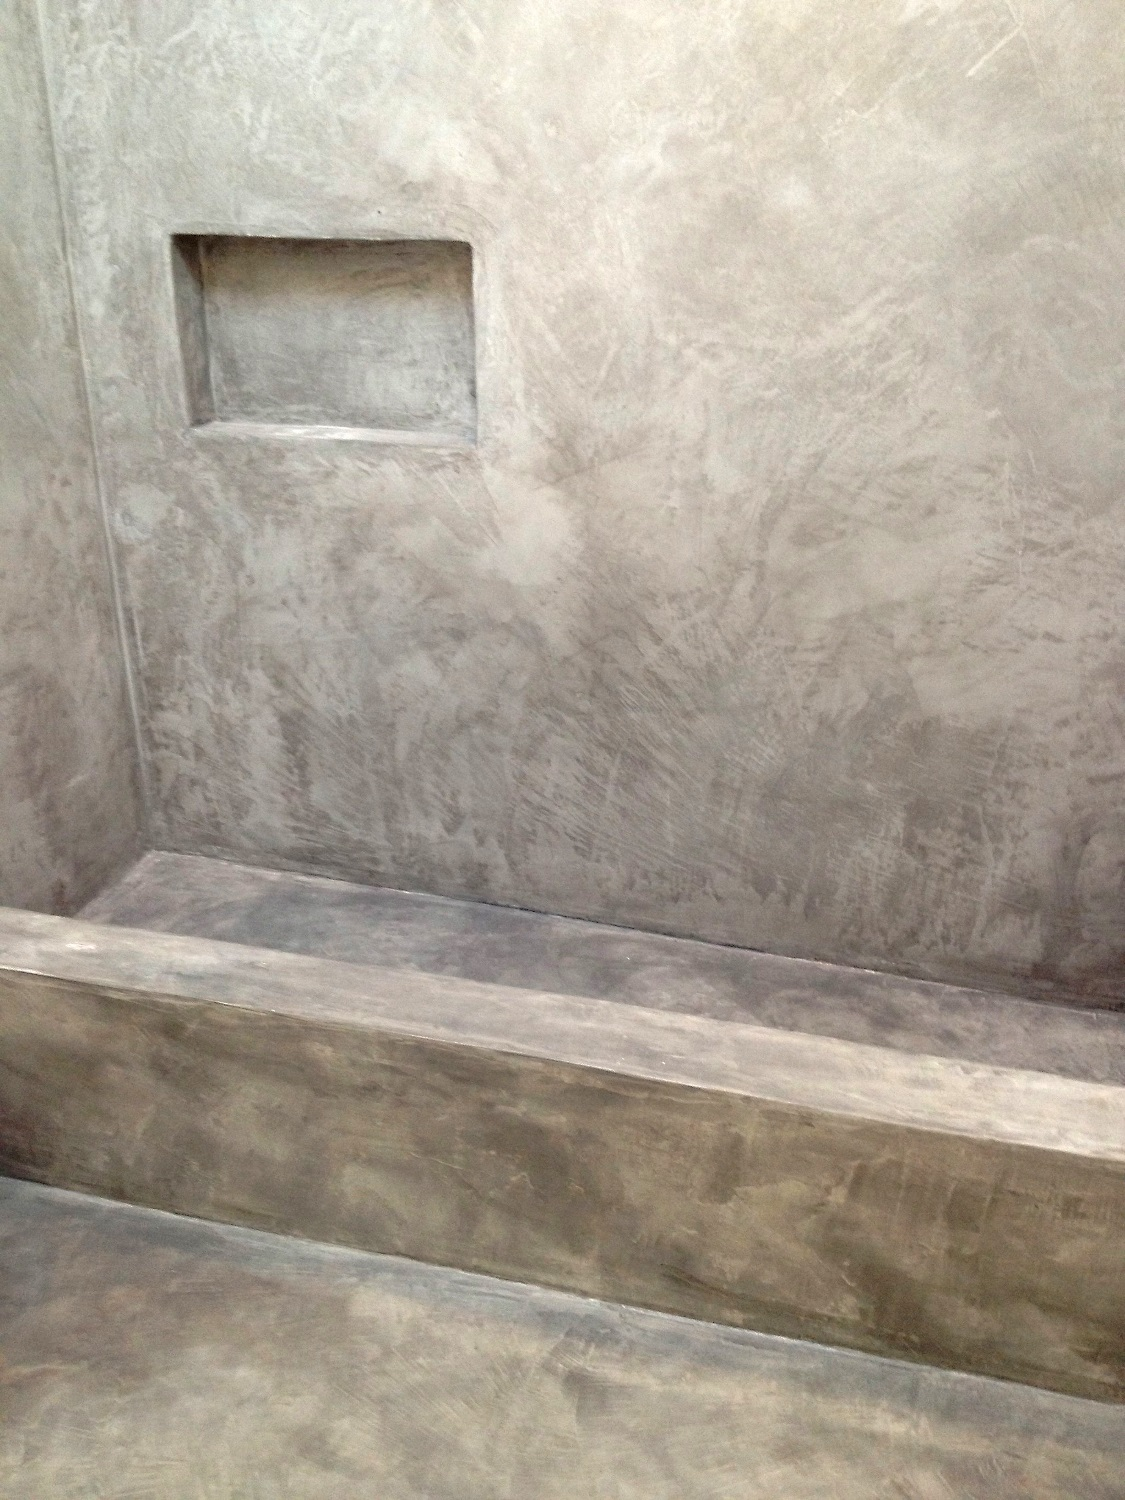 a.b.e. duraproof cem block powdered cementitious waterproofing product